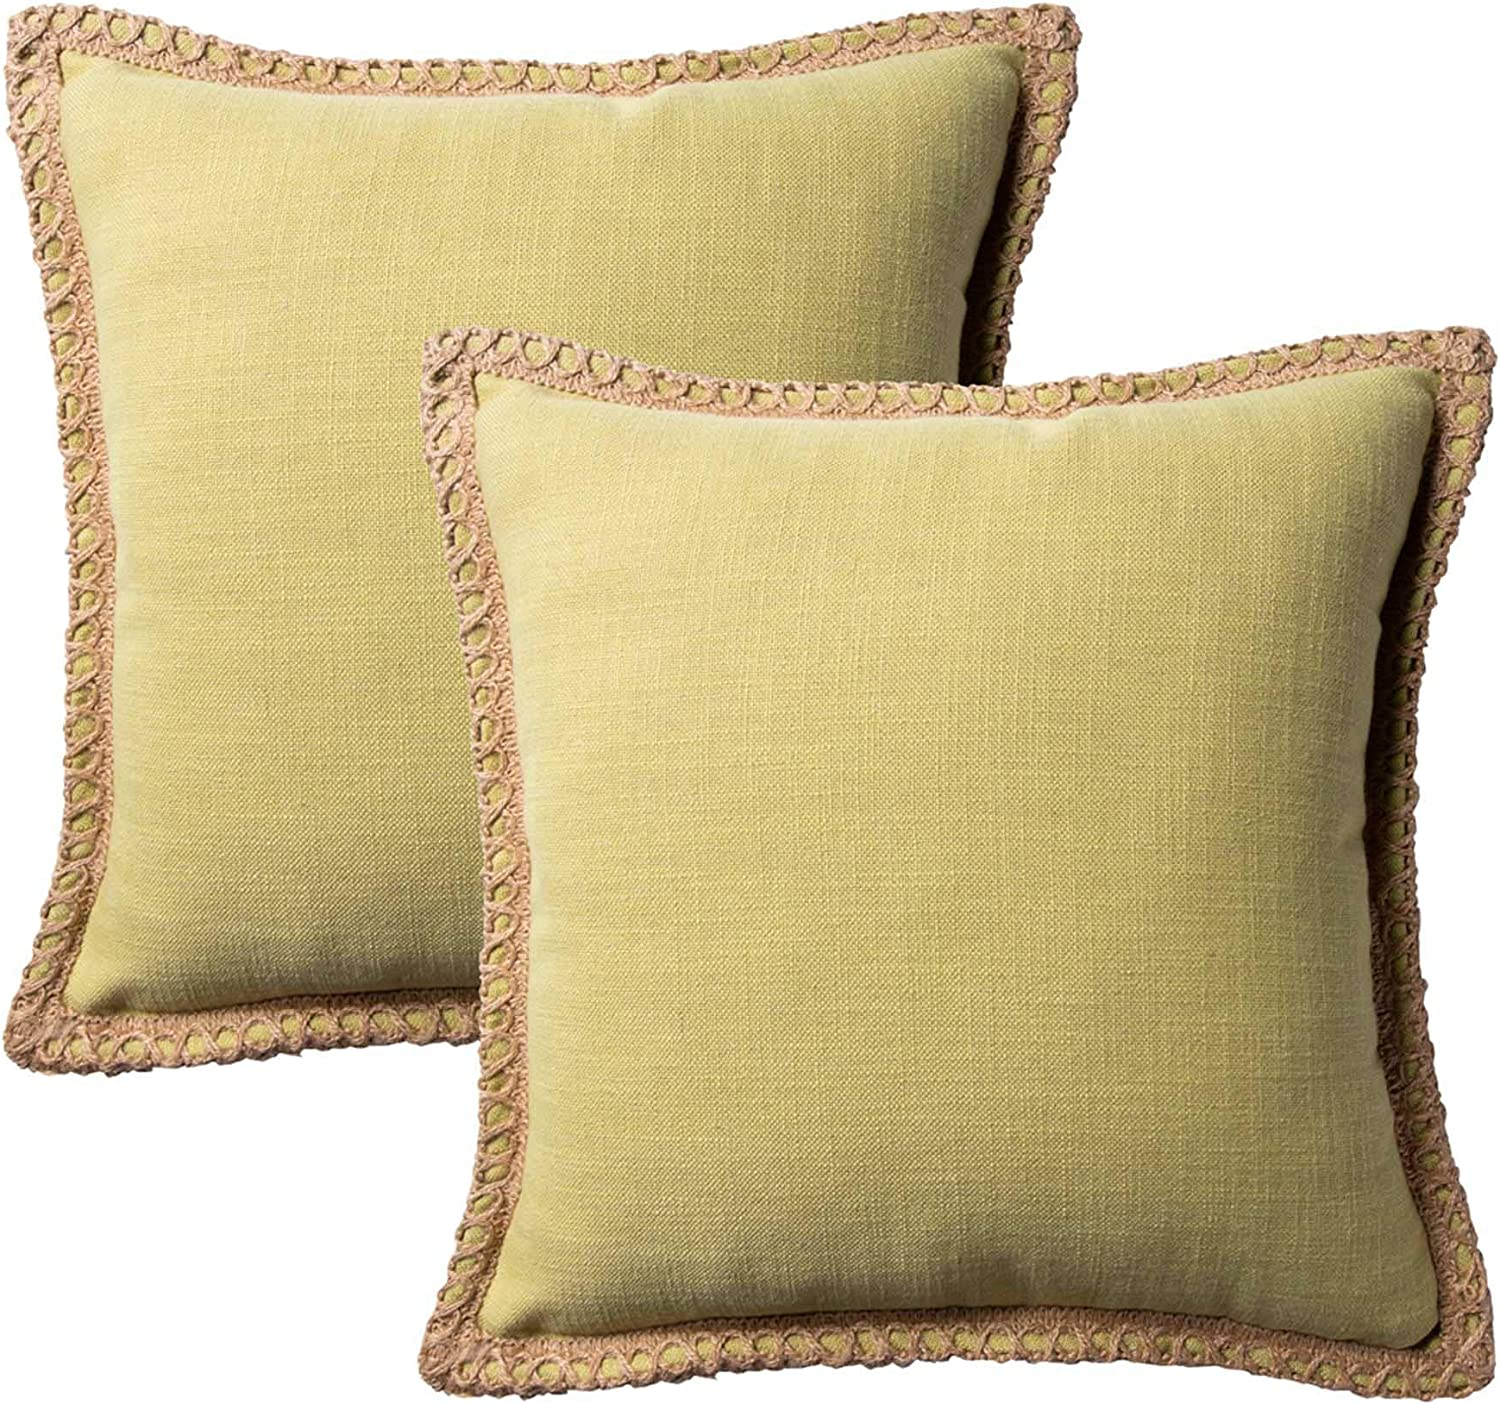 Azume Set of 2 Decorative Throw Pillow Covers Burlap Linen Trimmed Edges Modern Farmhouse Cushion Cover for Couch, Sofa, Chair, Living Room, 18 x 18 inches, Green